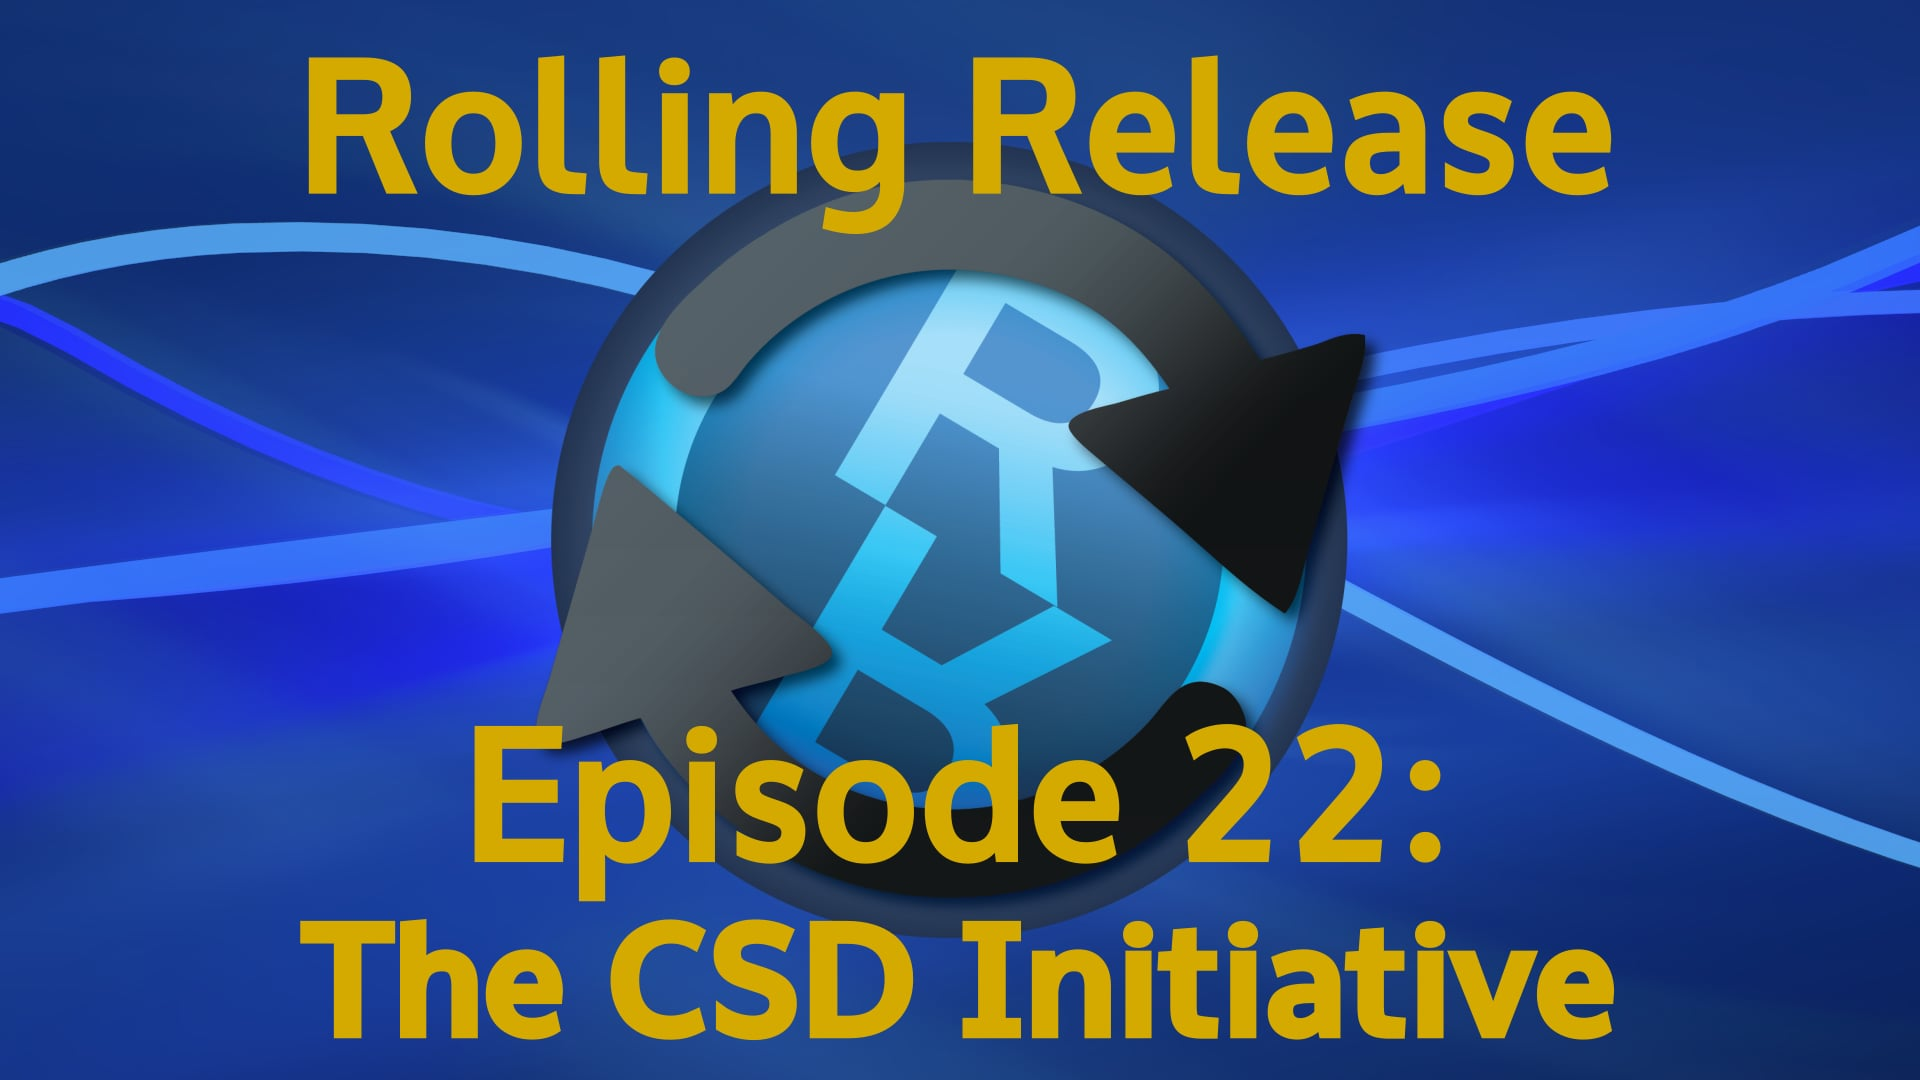 The CSD Initiative - Rolling Release #22